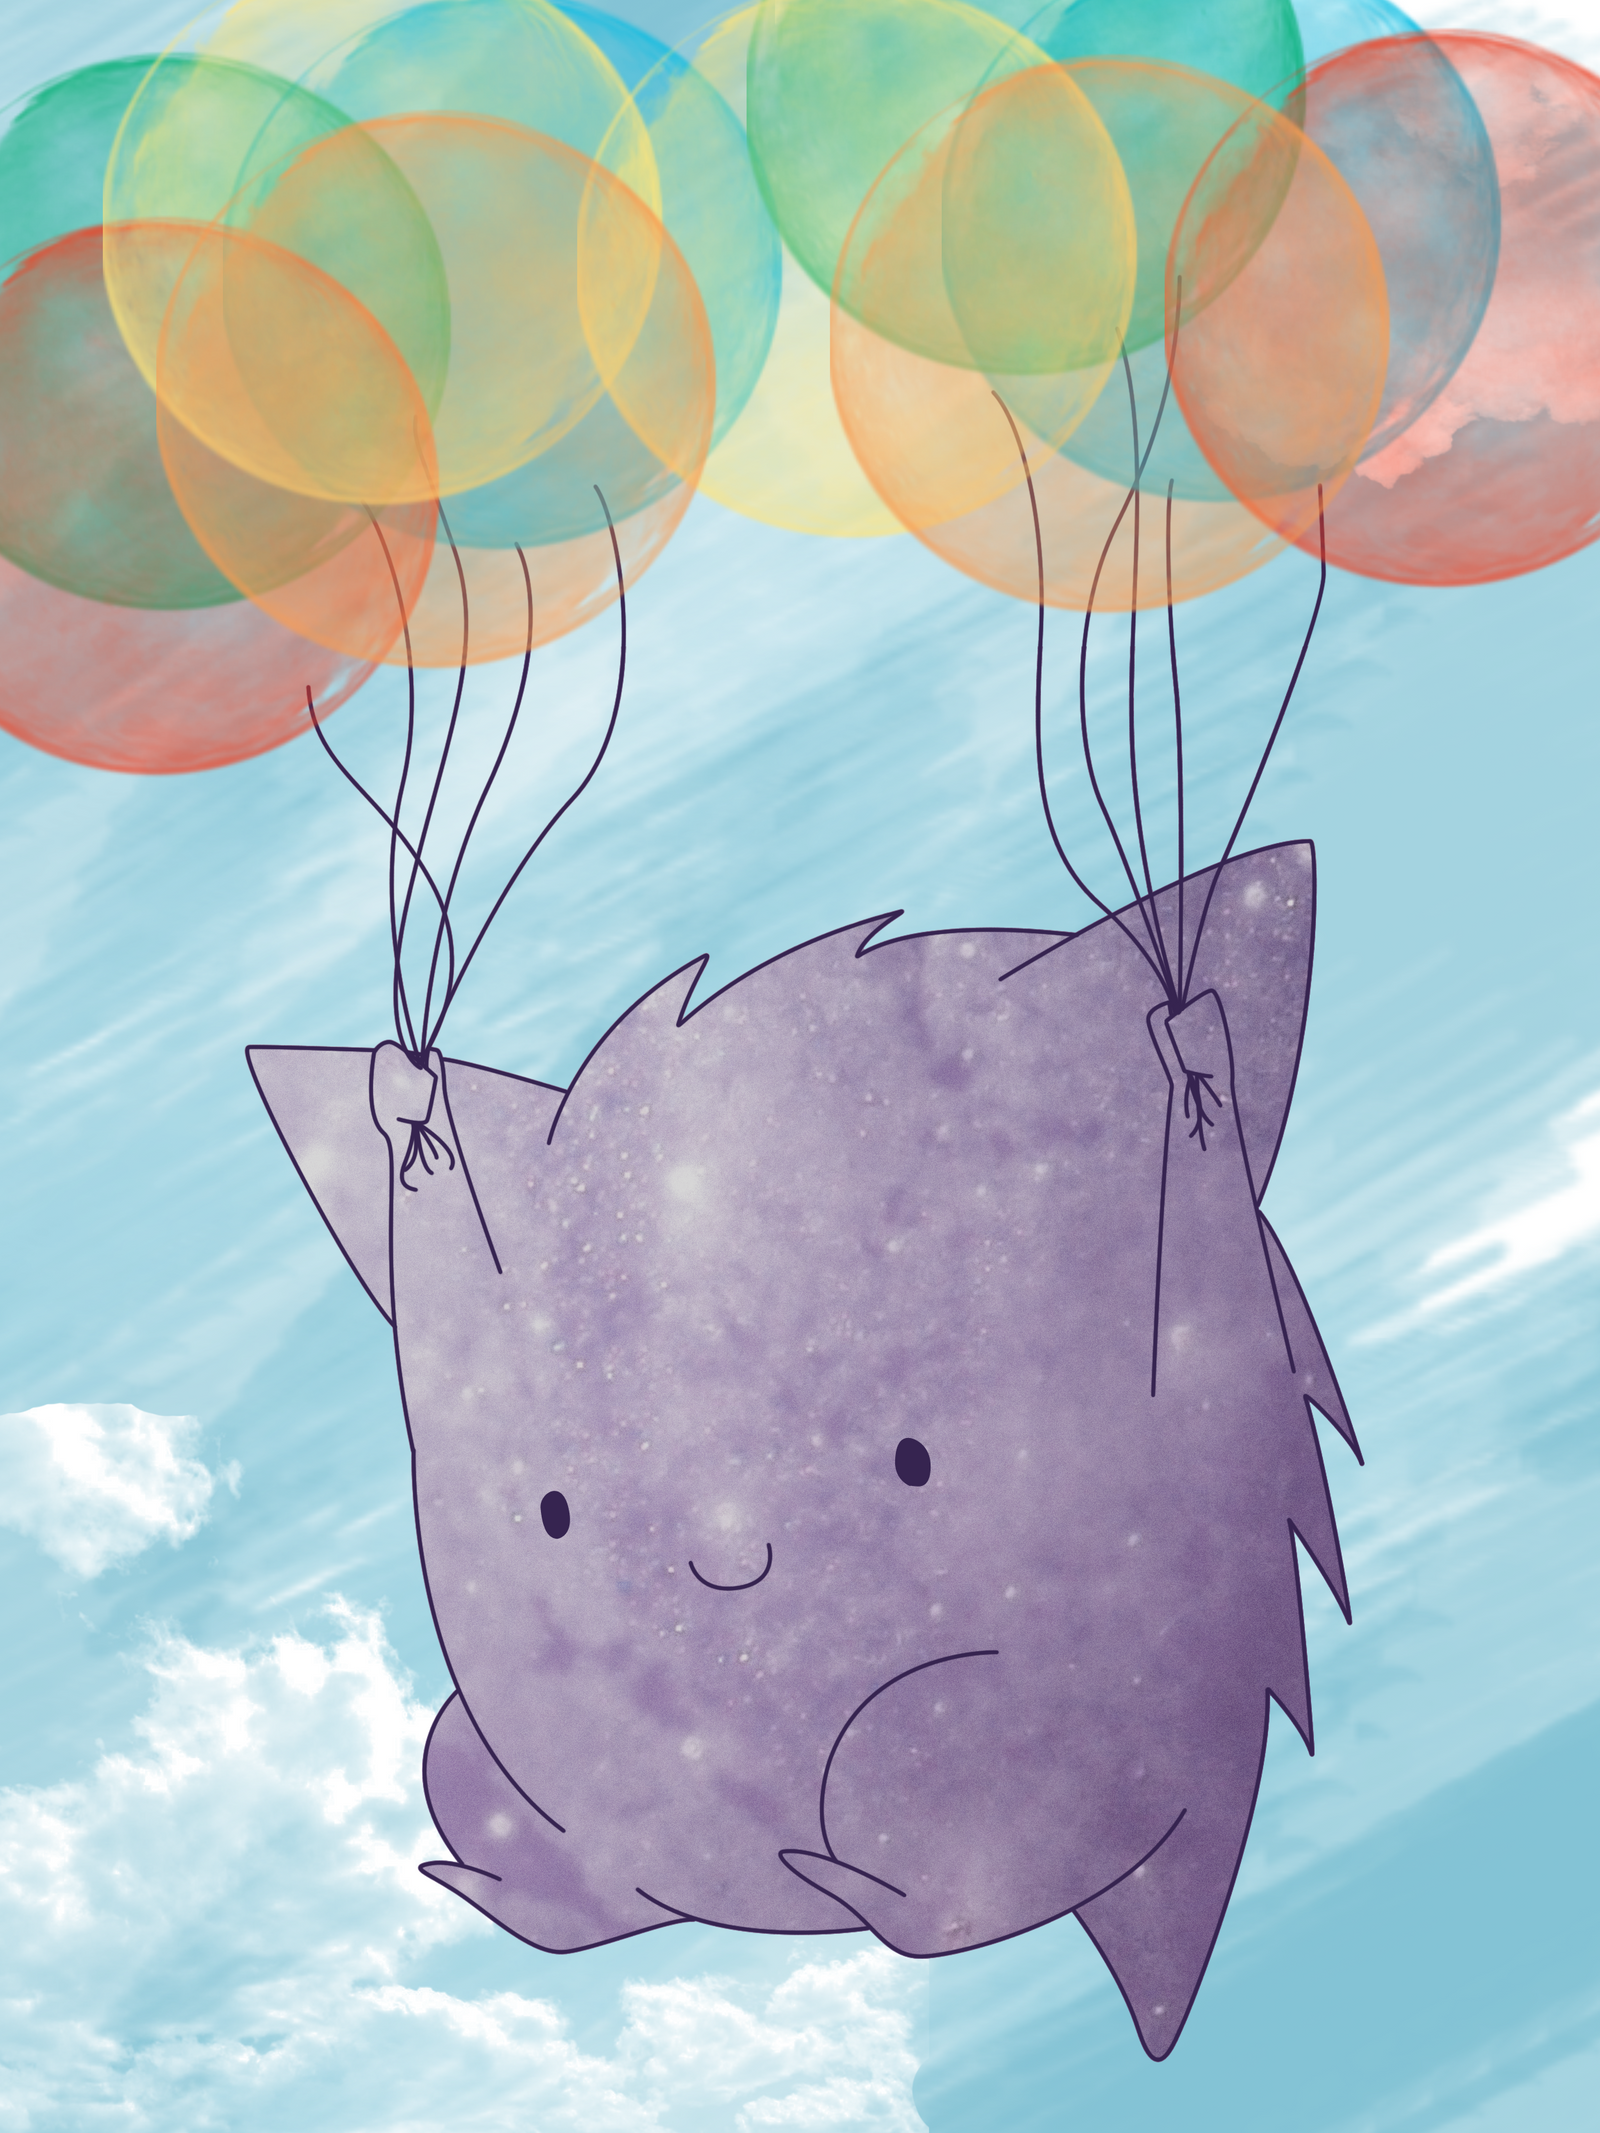 Balloon Gengar by Digillama on DeviantArt